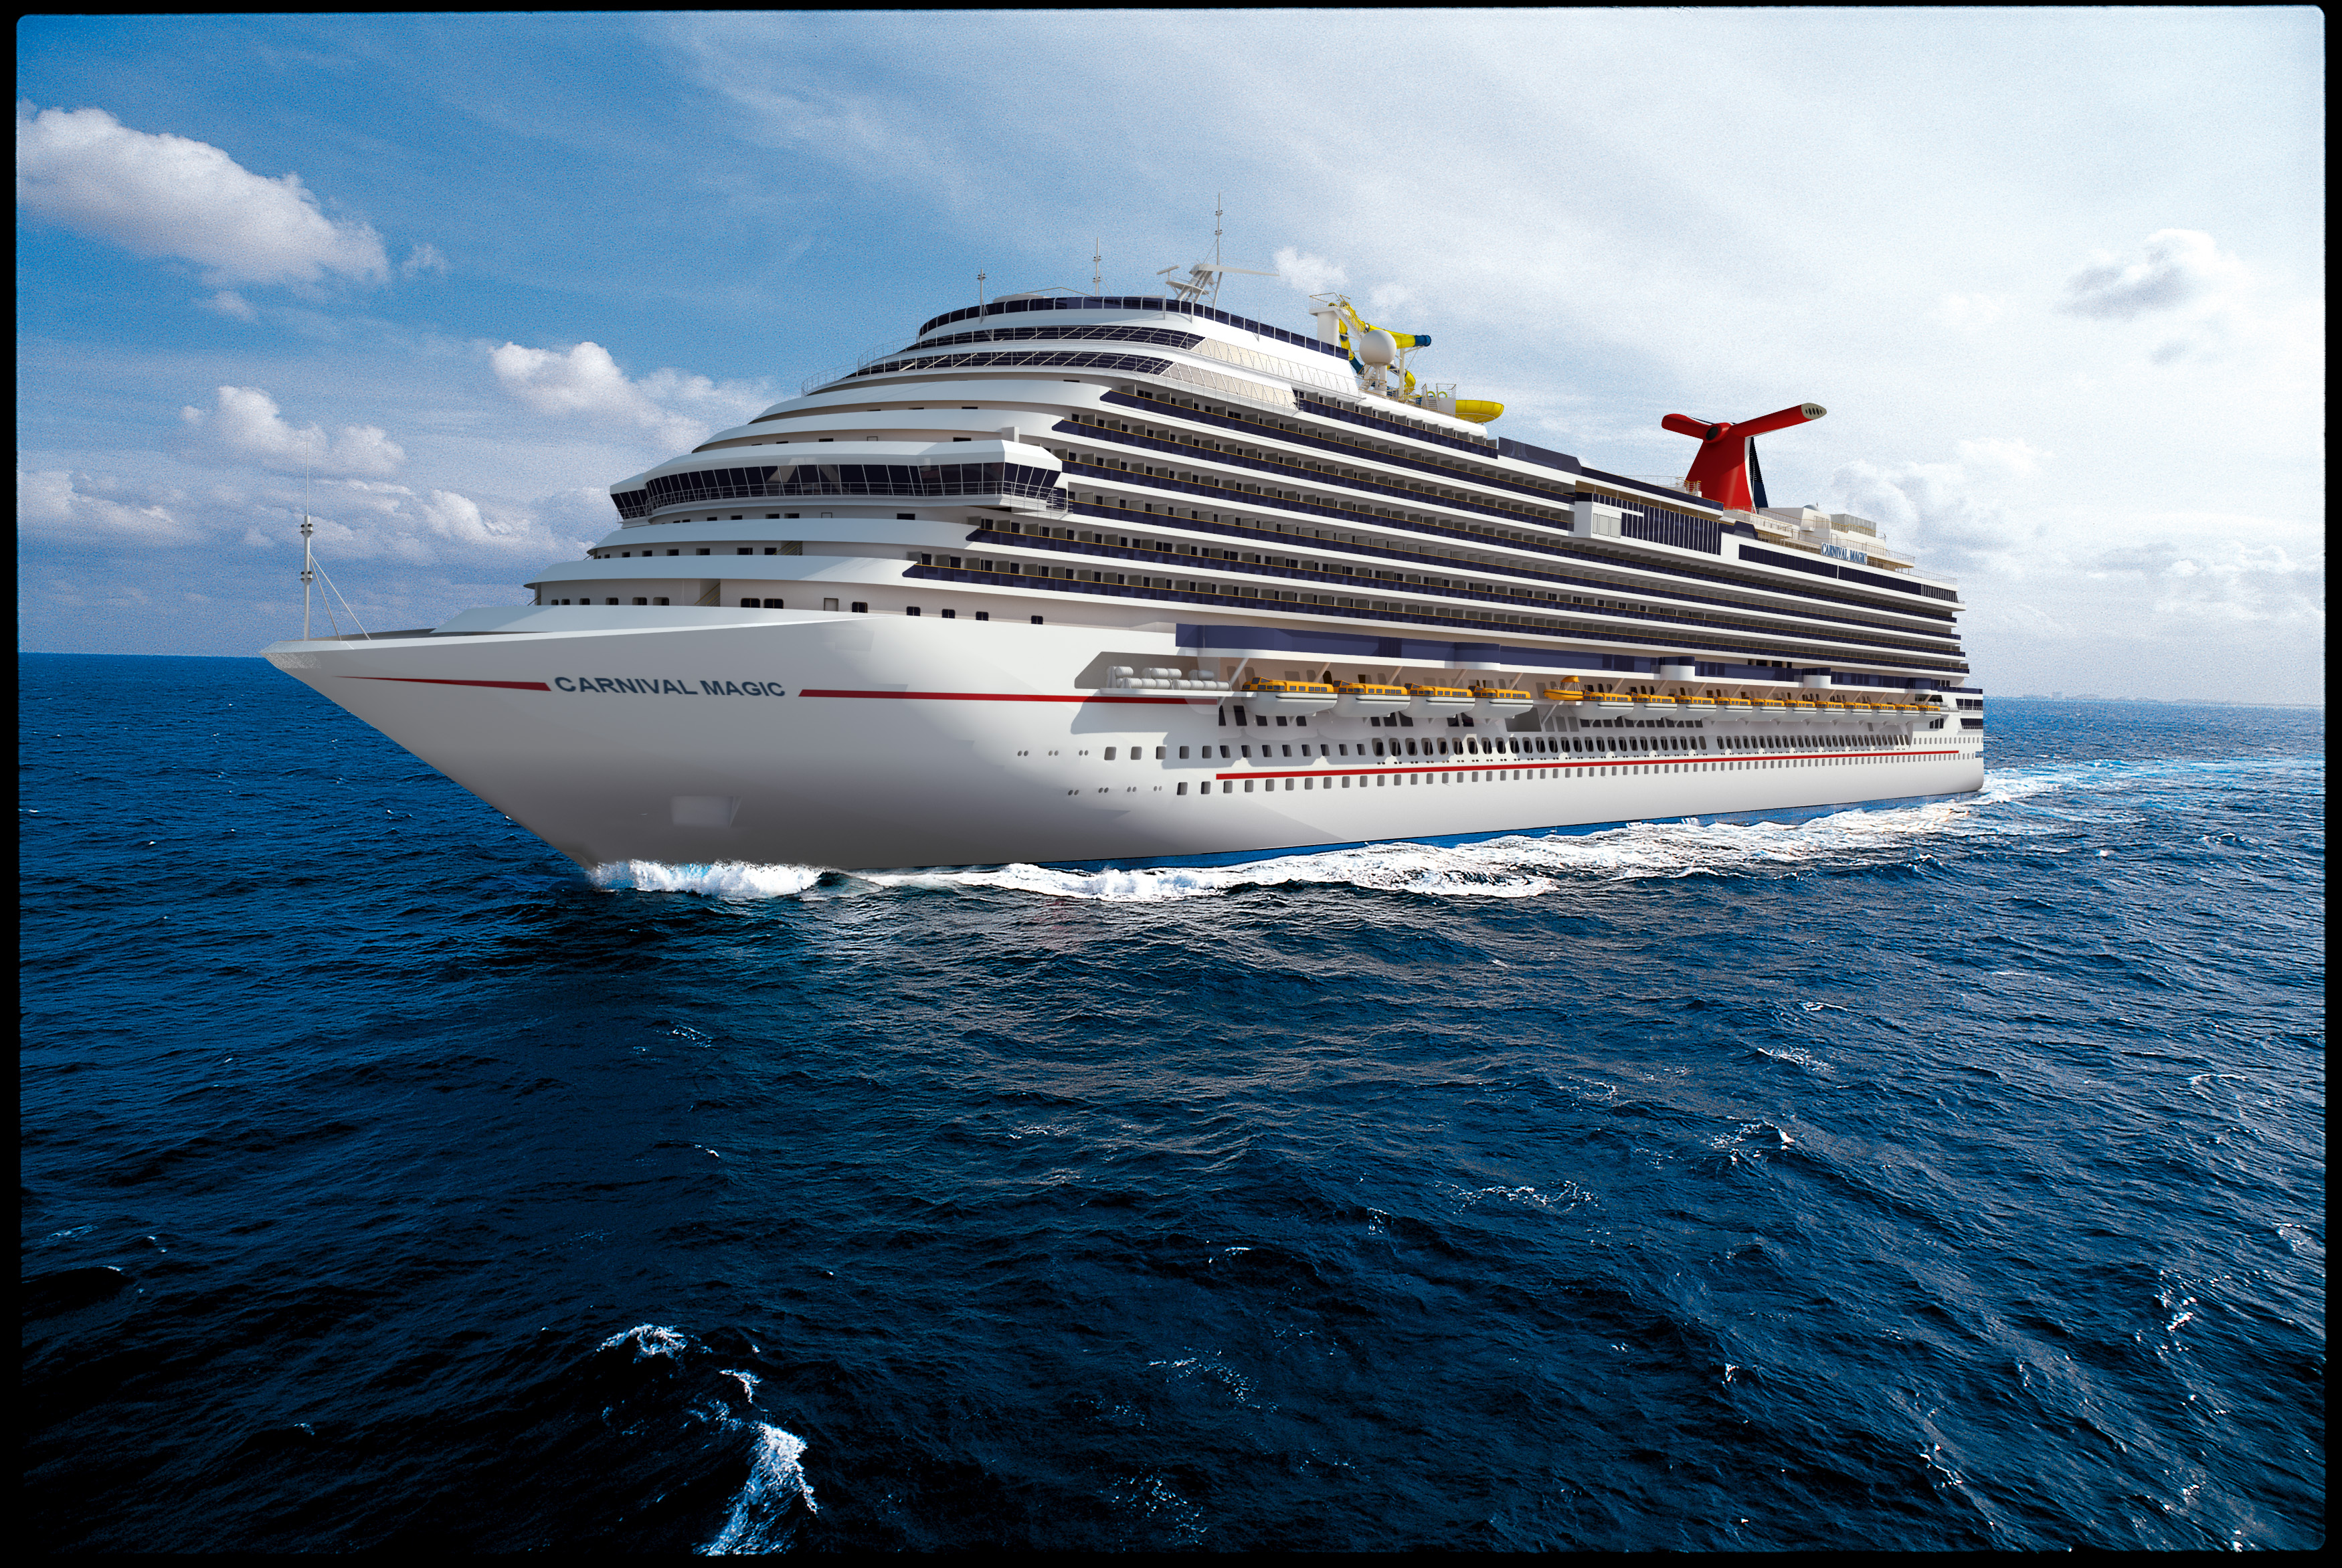 Cruises From Galveston >> Carnival Magic To Operate Seven Day Cruises From Galveston To Be